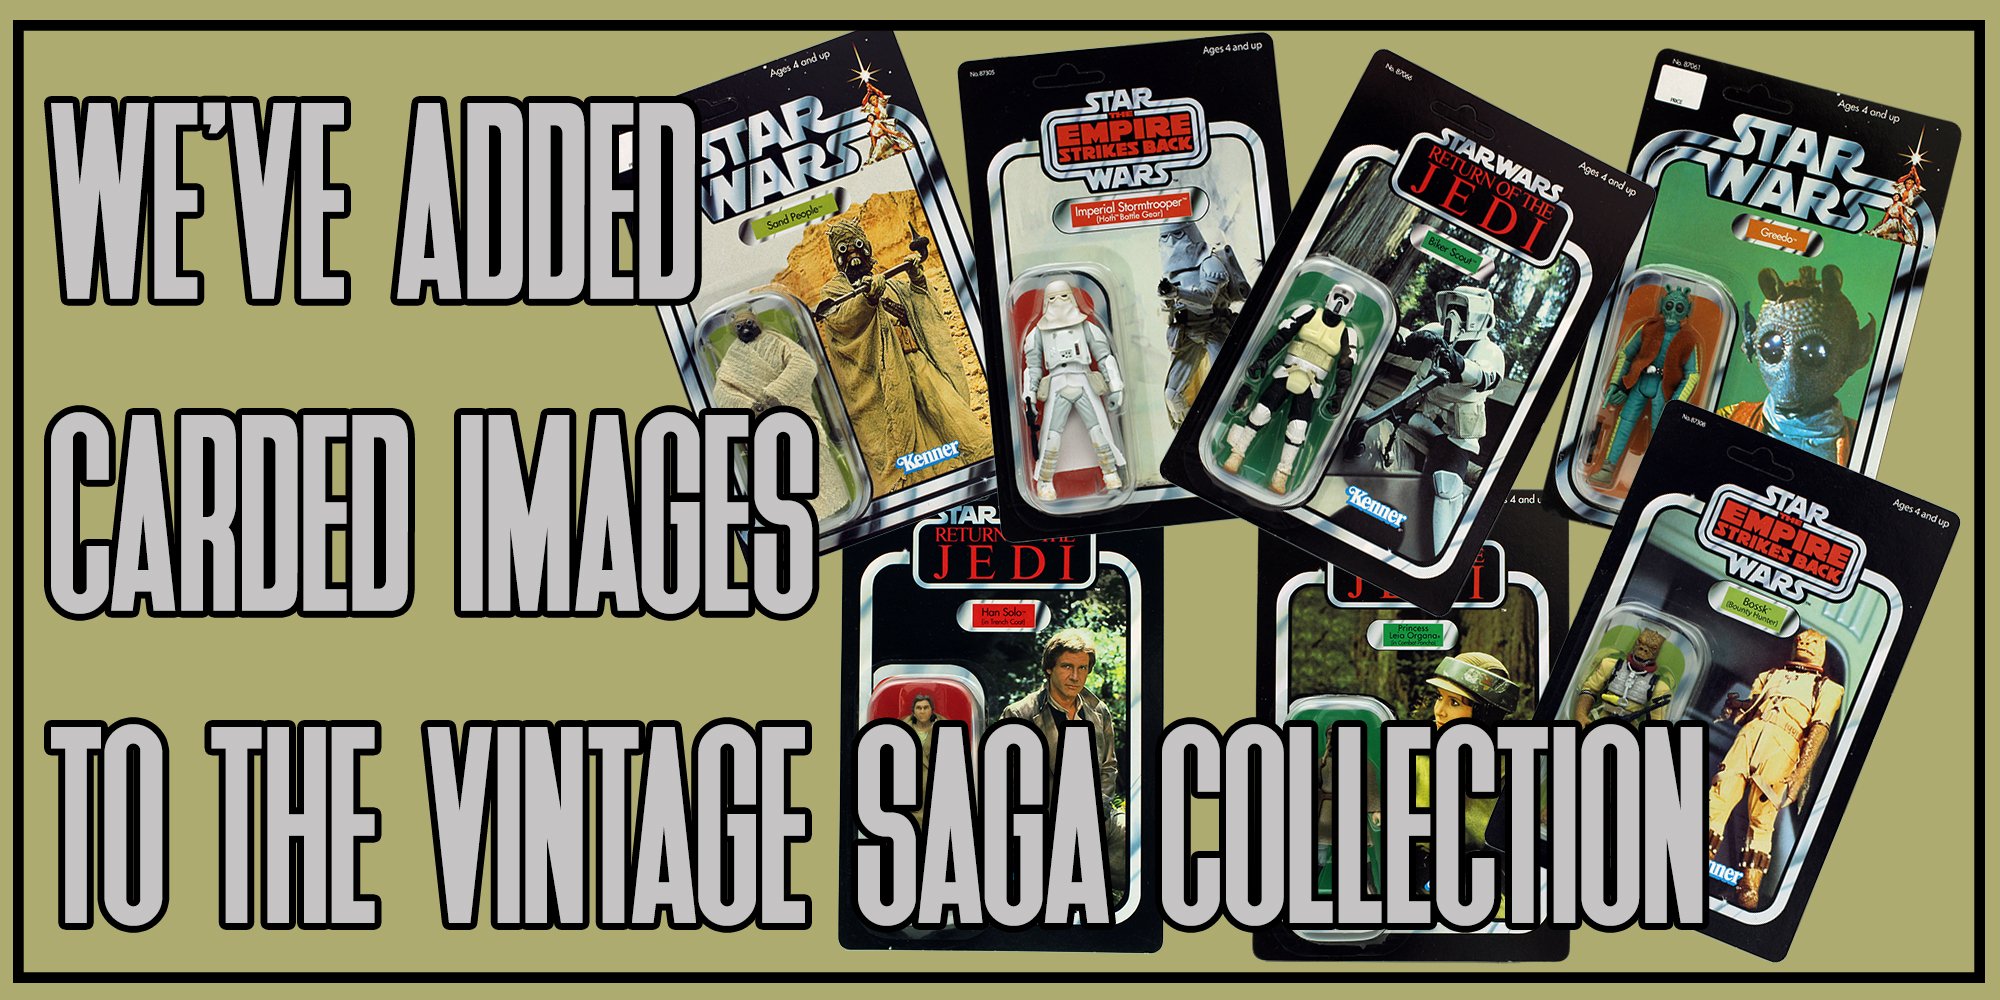 Carded Image Update For The Vintage SAGA Collection